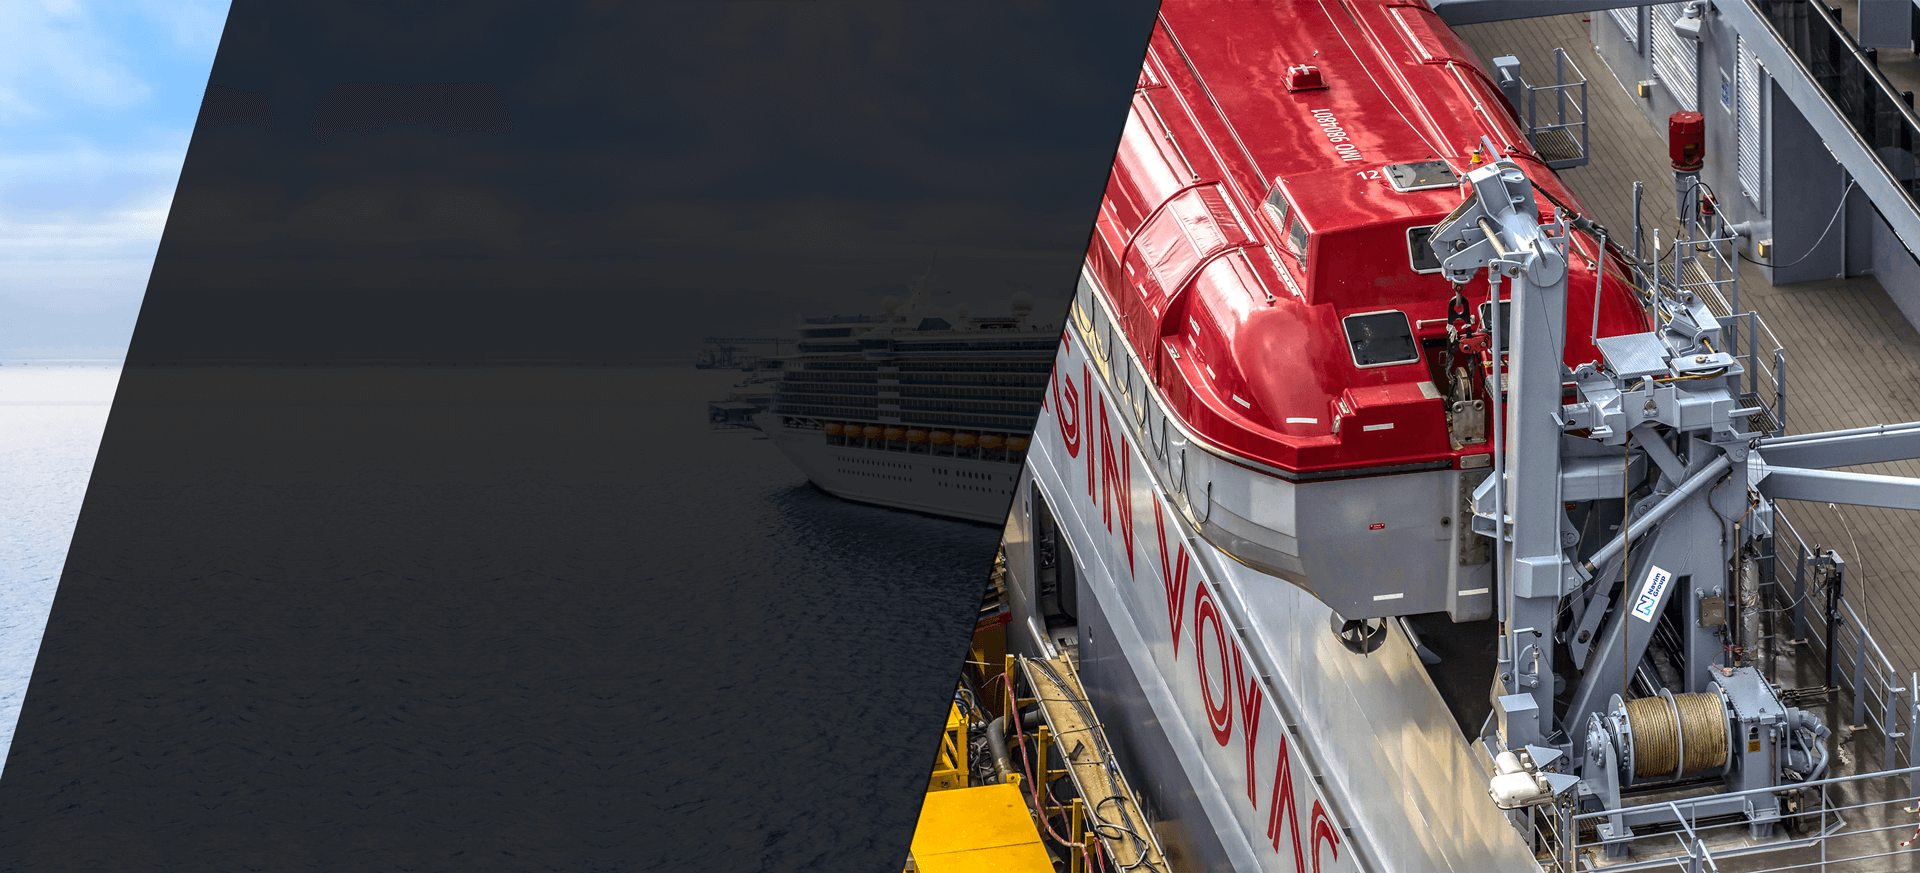 Navim Group Lifesaving Appliances (Davits & Winches) on Cruise vessels, Ferries & RoRo